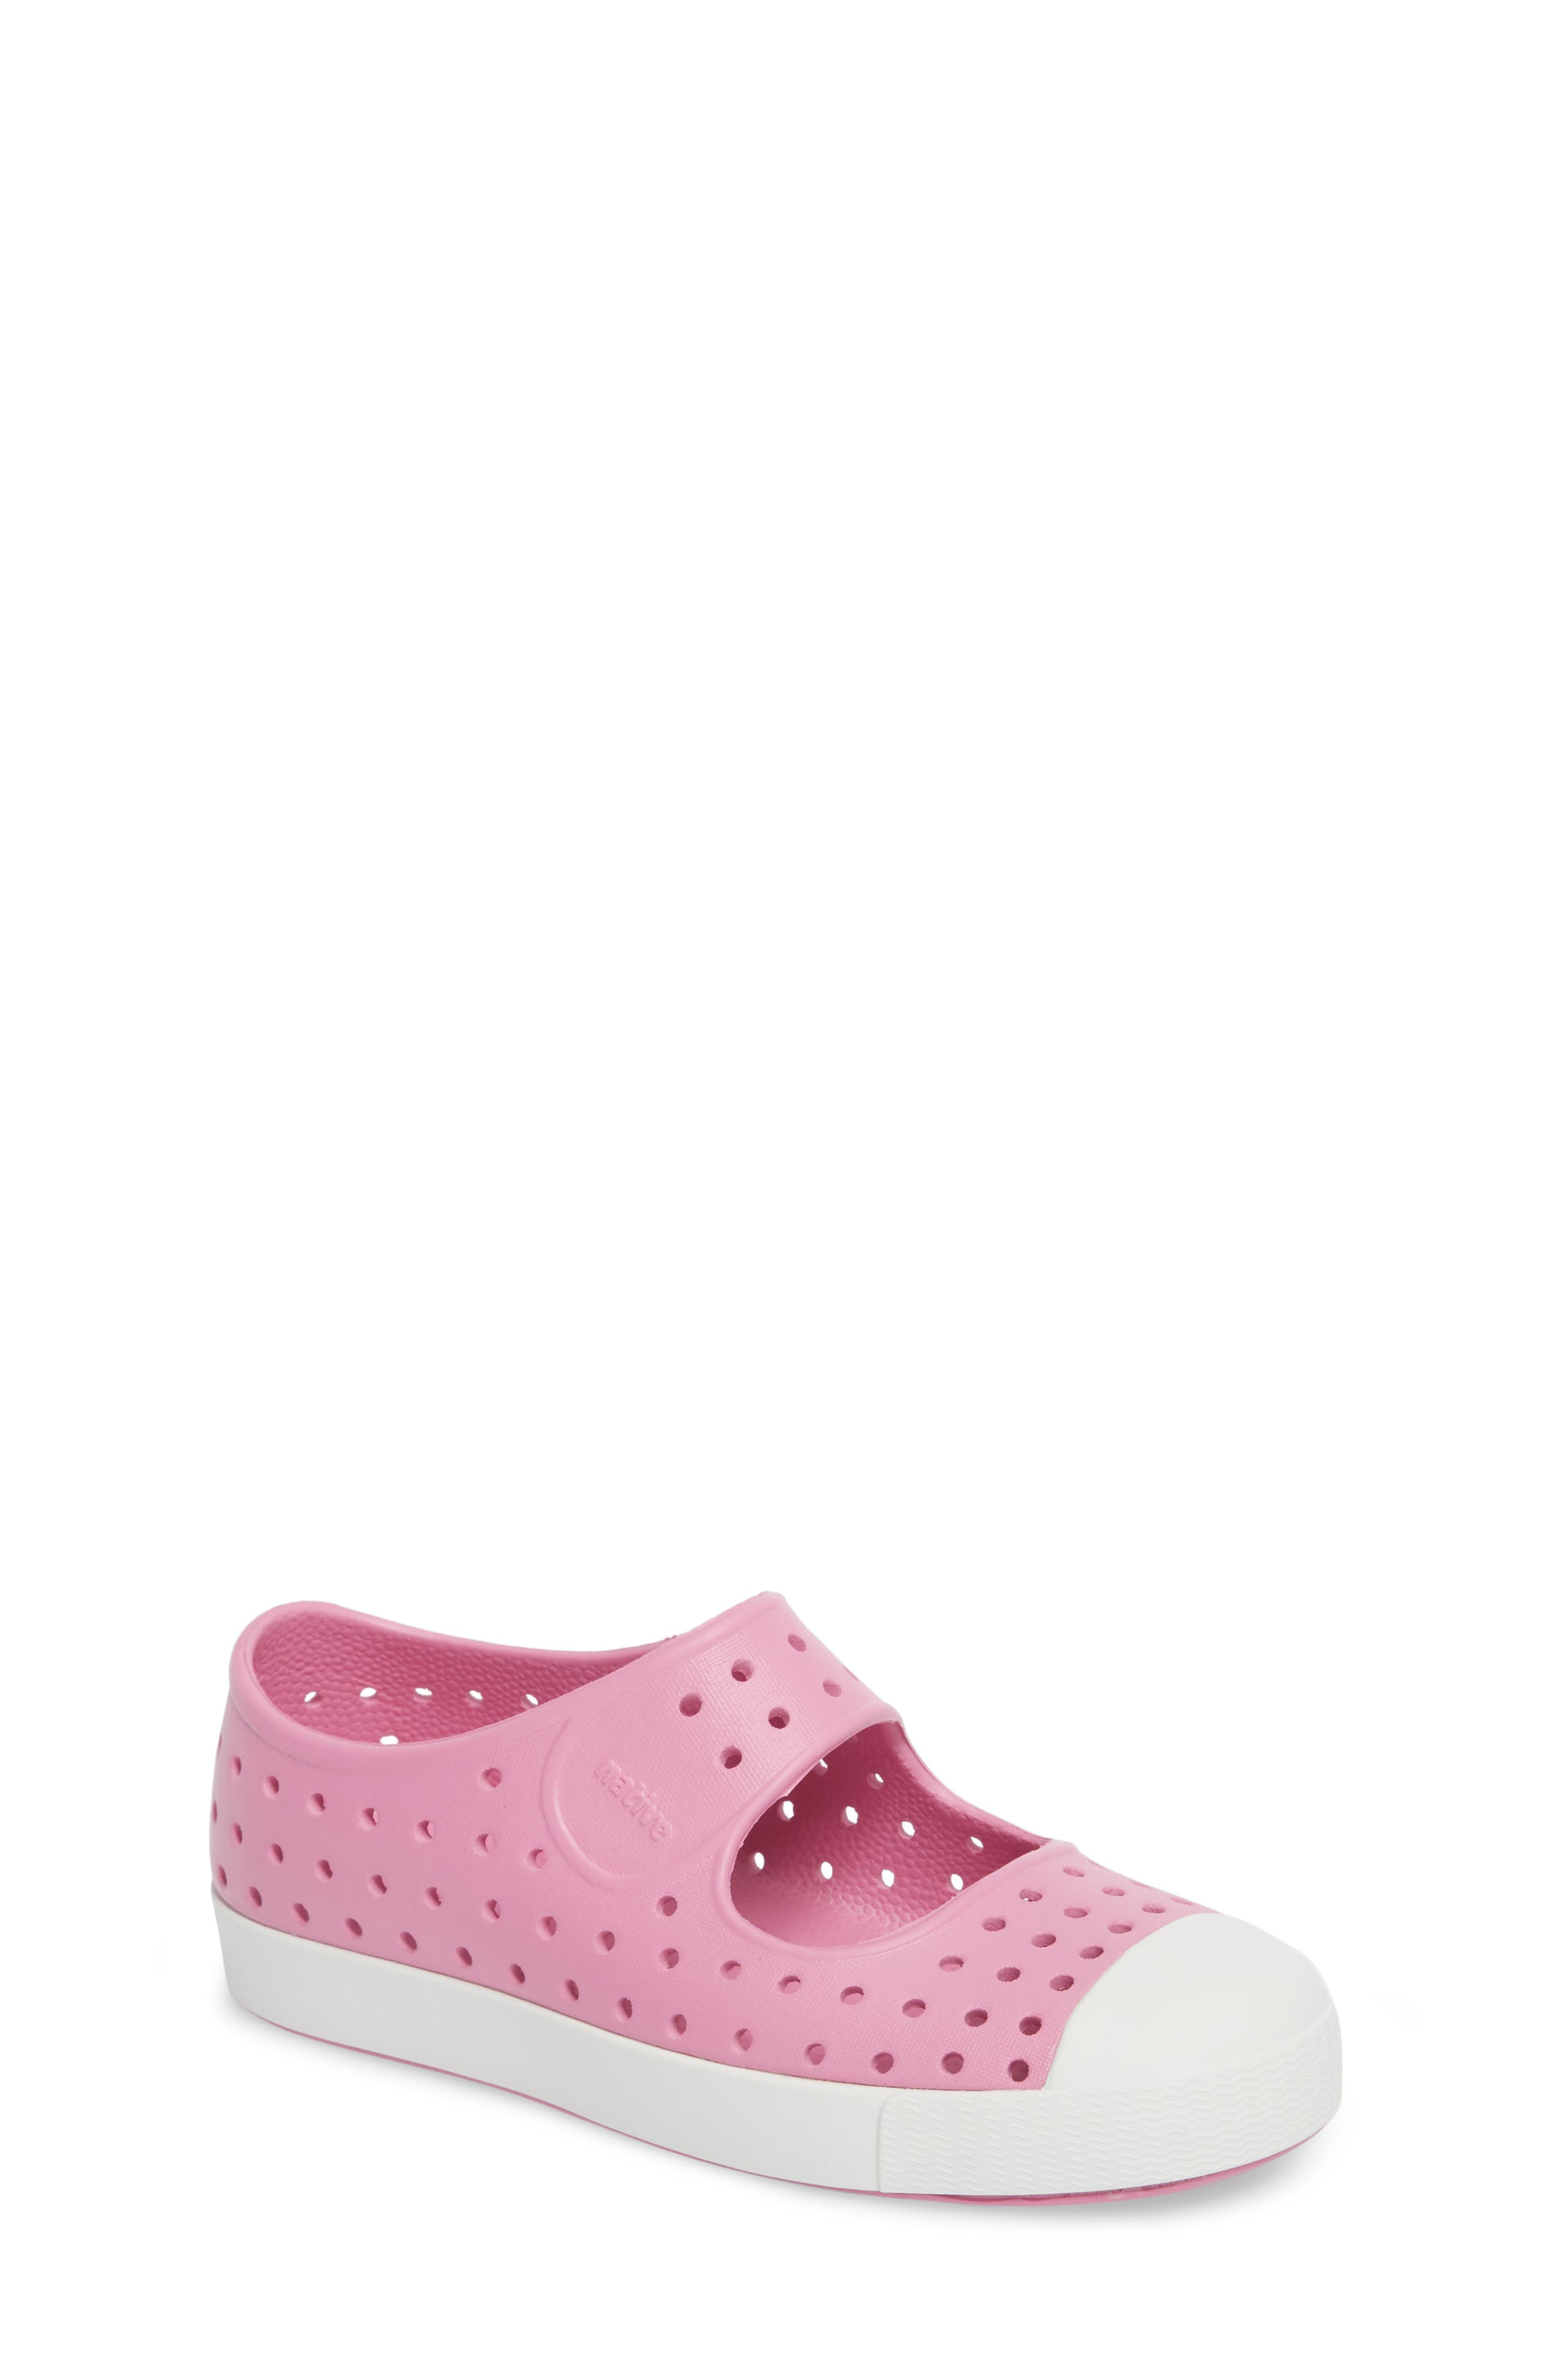 Native Shoes Juniper Mary Jane (Baby, Walker, Toddler & Little Kid)